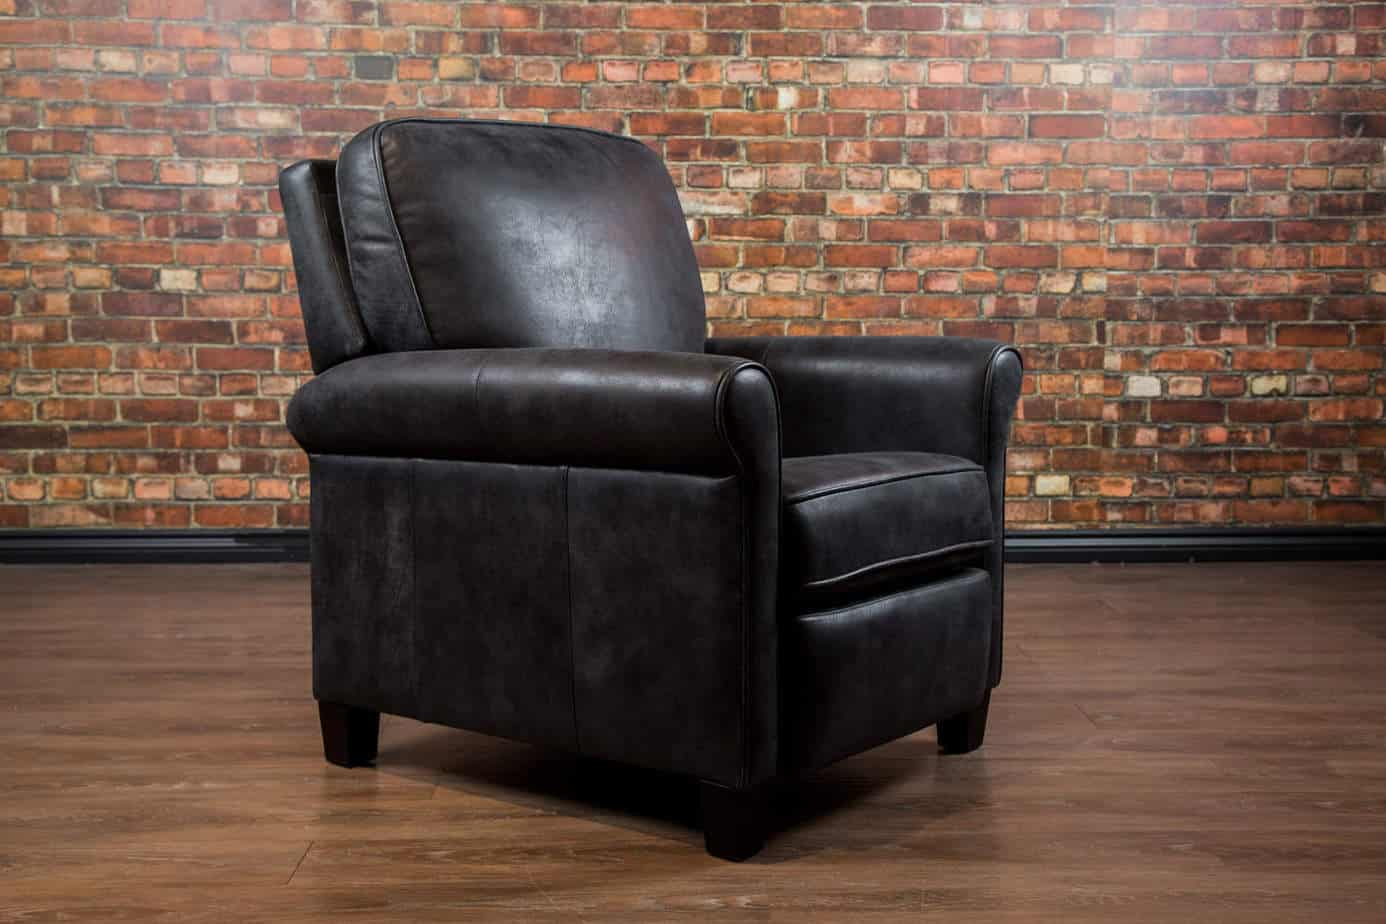 The Chicago Leather Reclining Chair Collection | Canada's ...